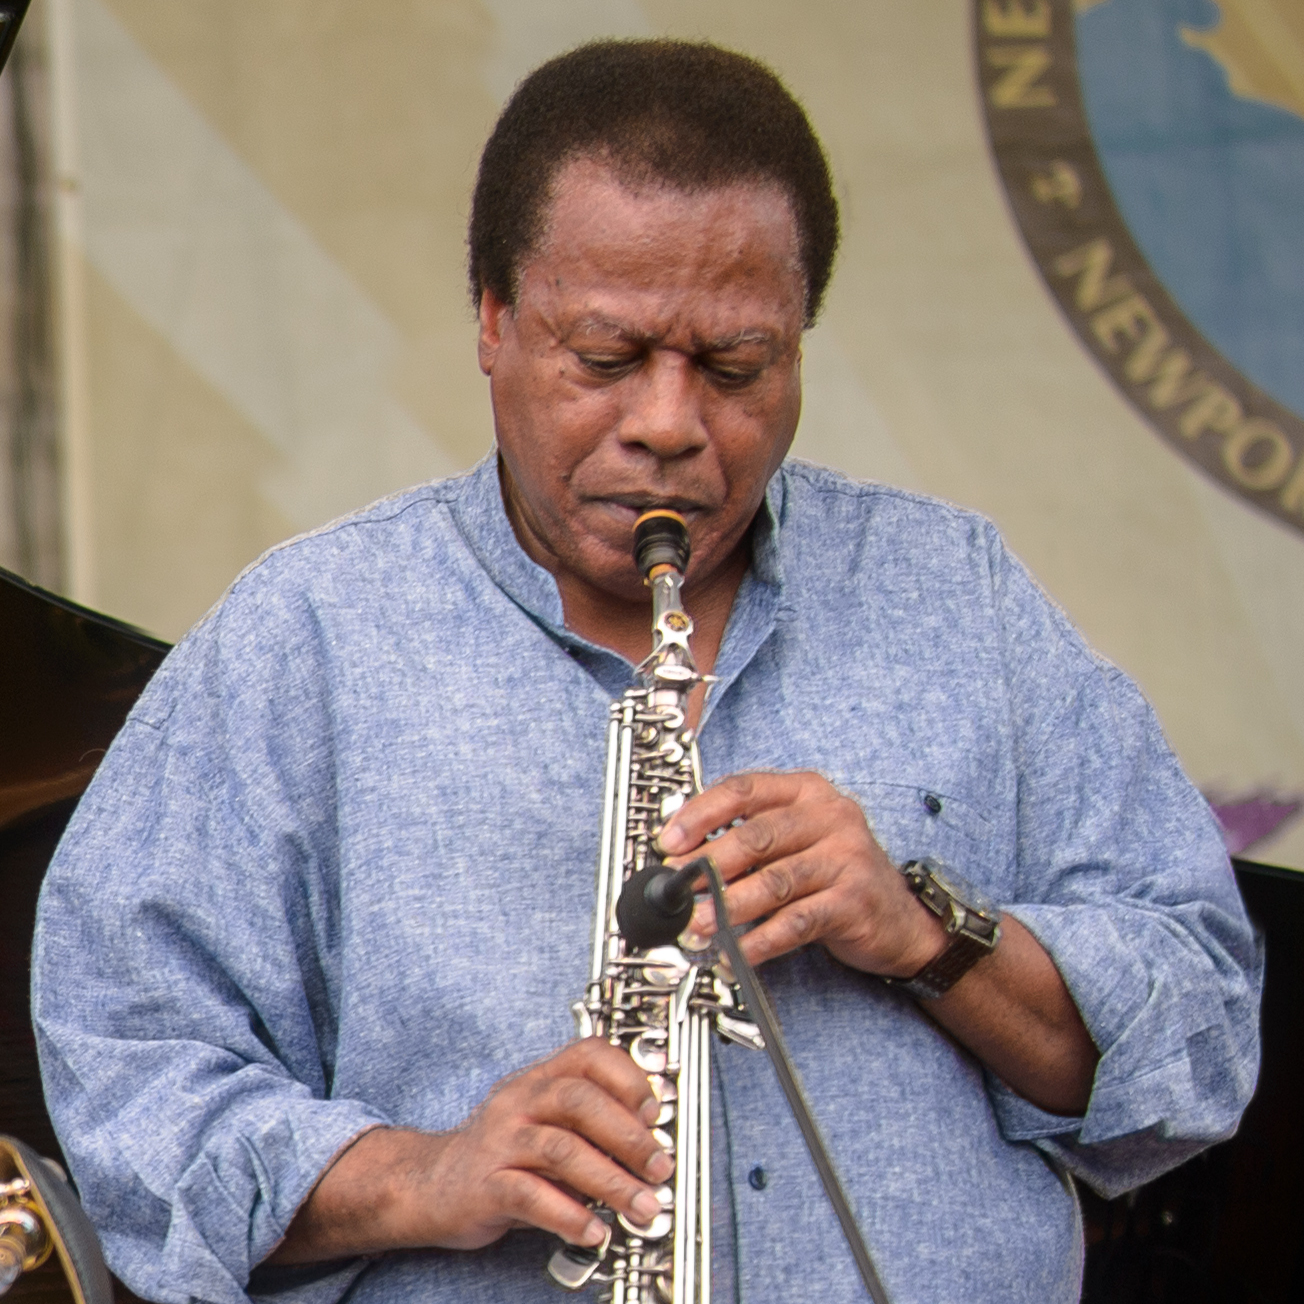 Herbie Hancock (left) joins Wayne Shorter at the 2013 Newport Jazz Festival.